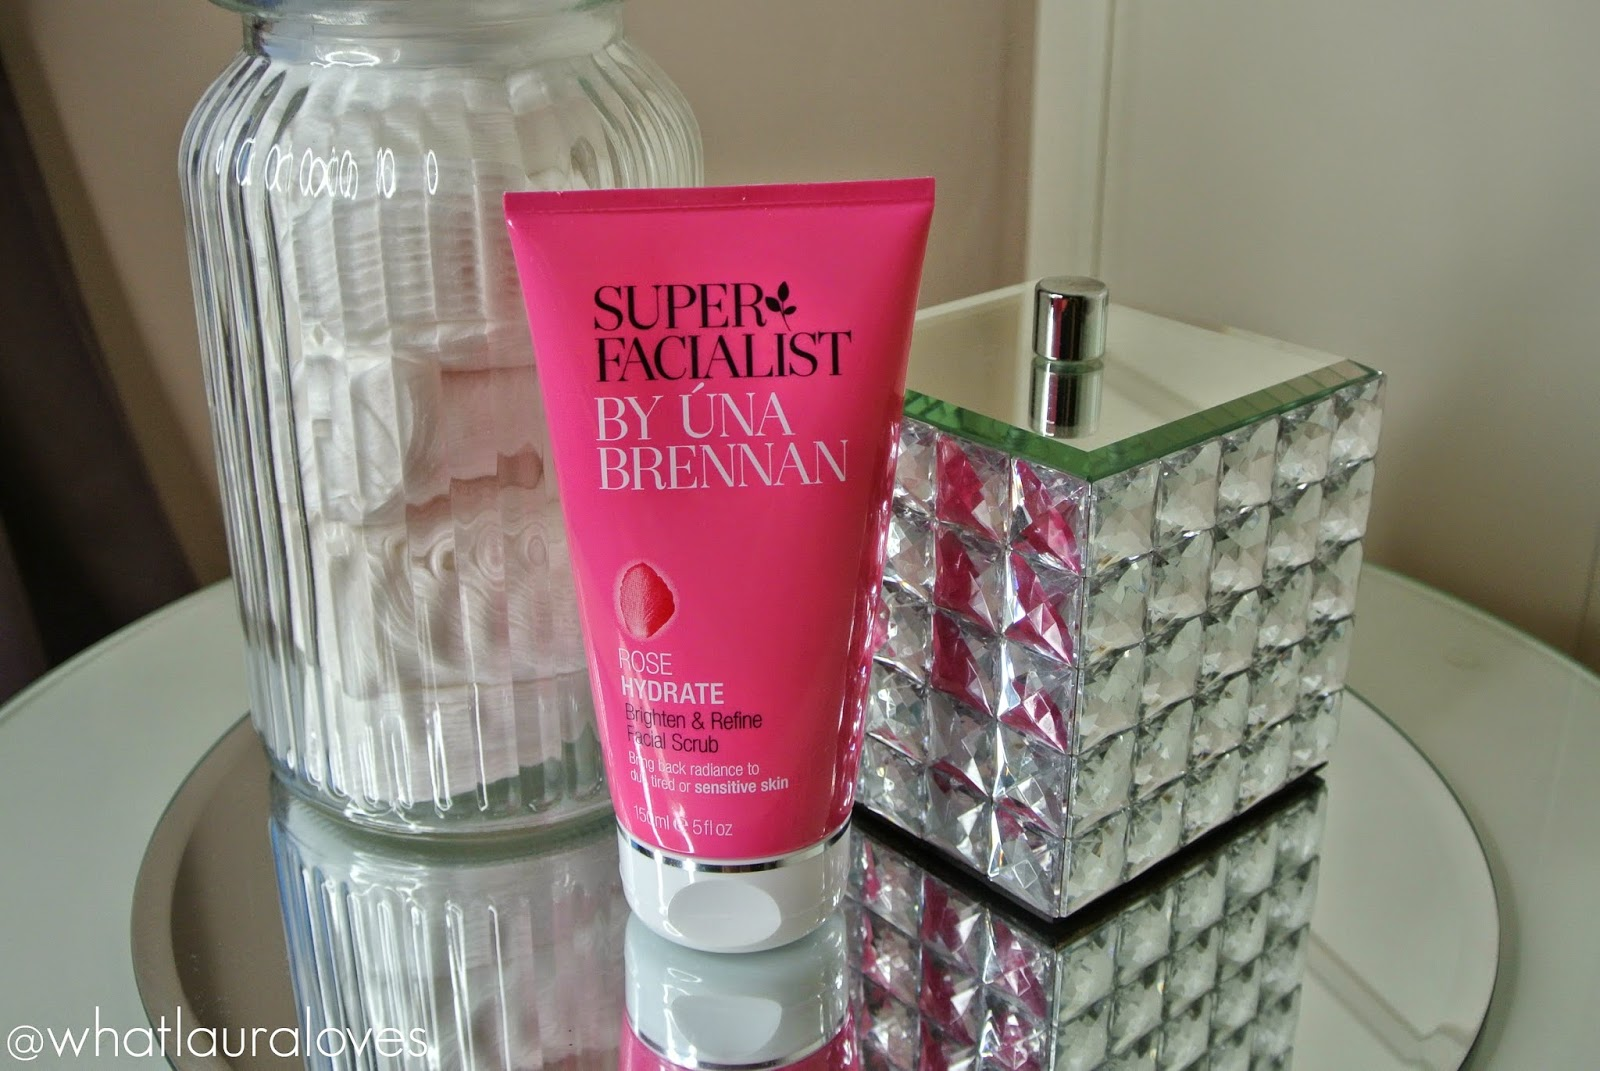 Super Facialist by Una Brennan Rose Hydrate Brighten and Refine Facial Scrub Review